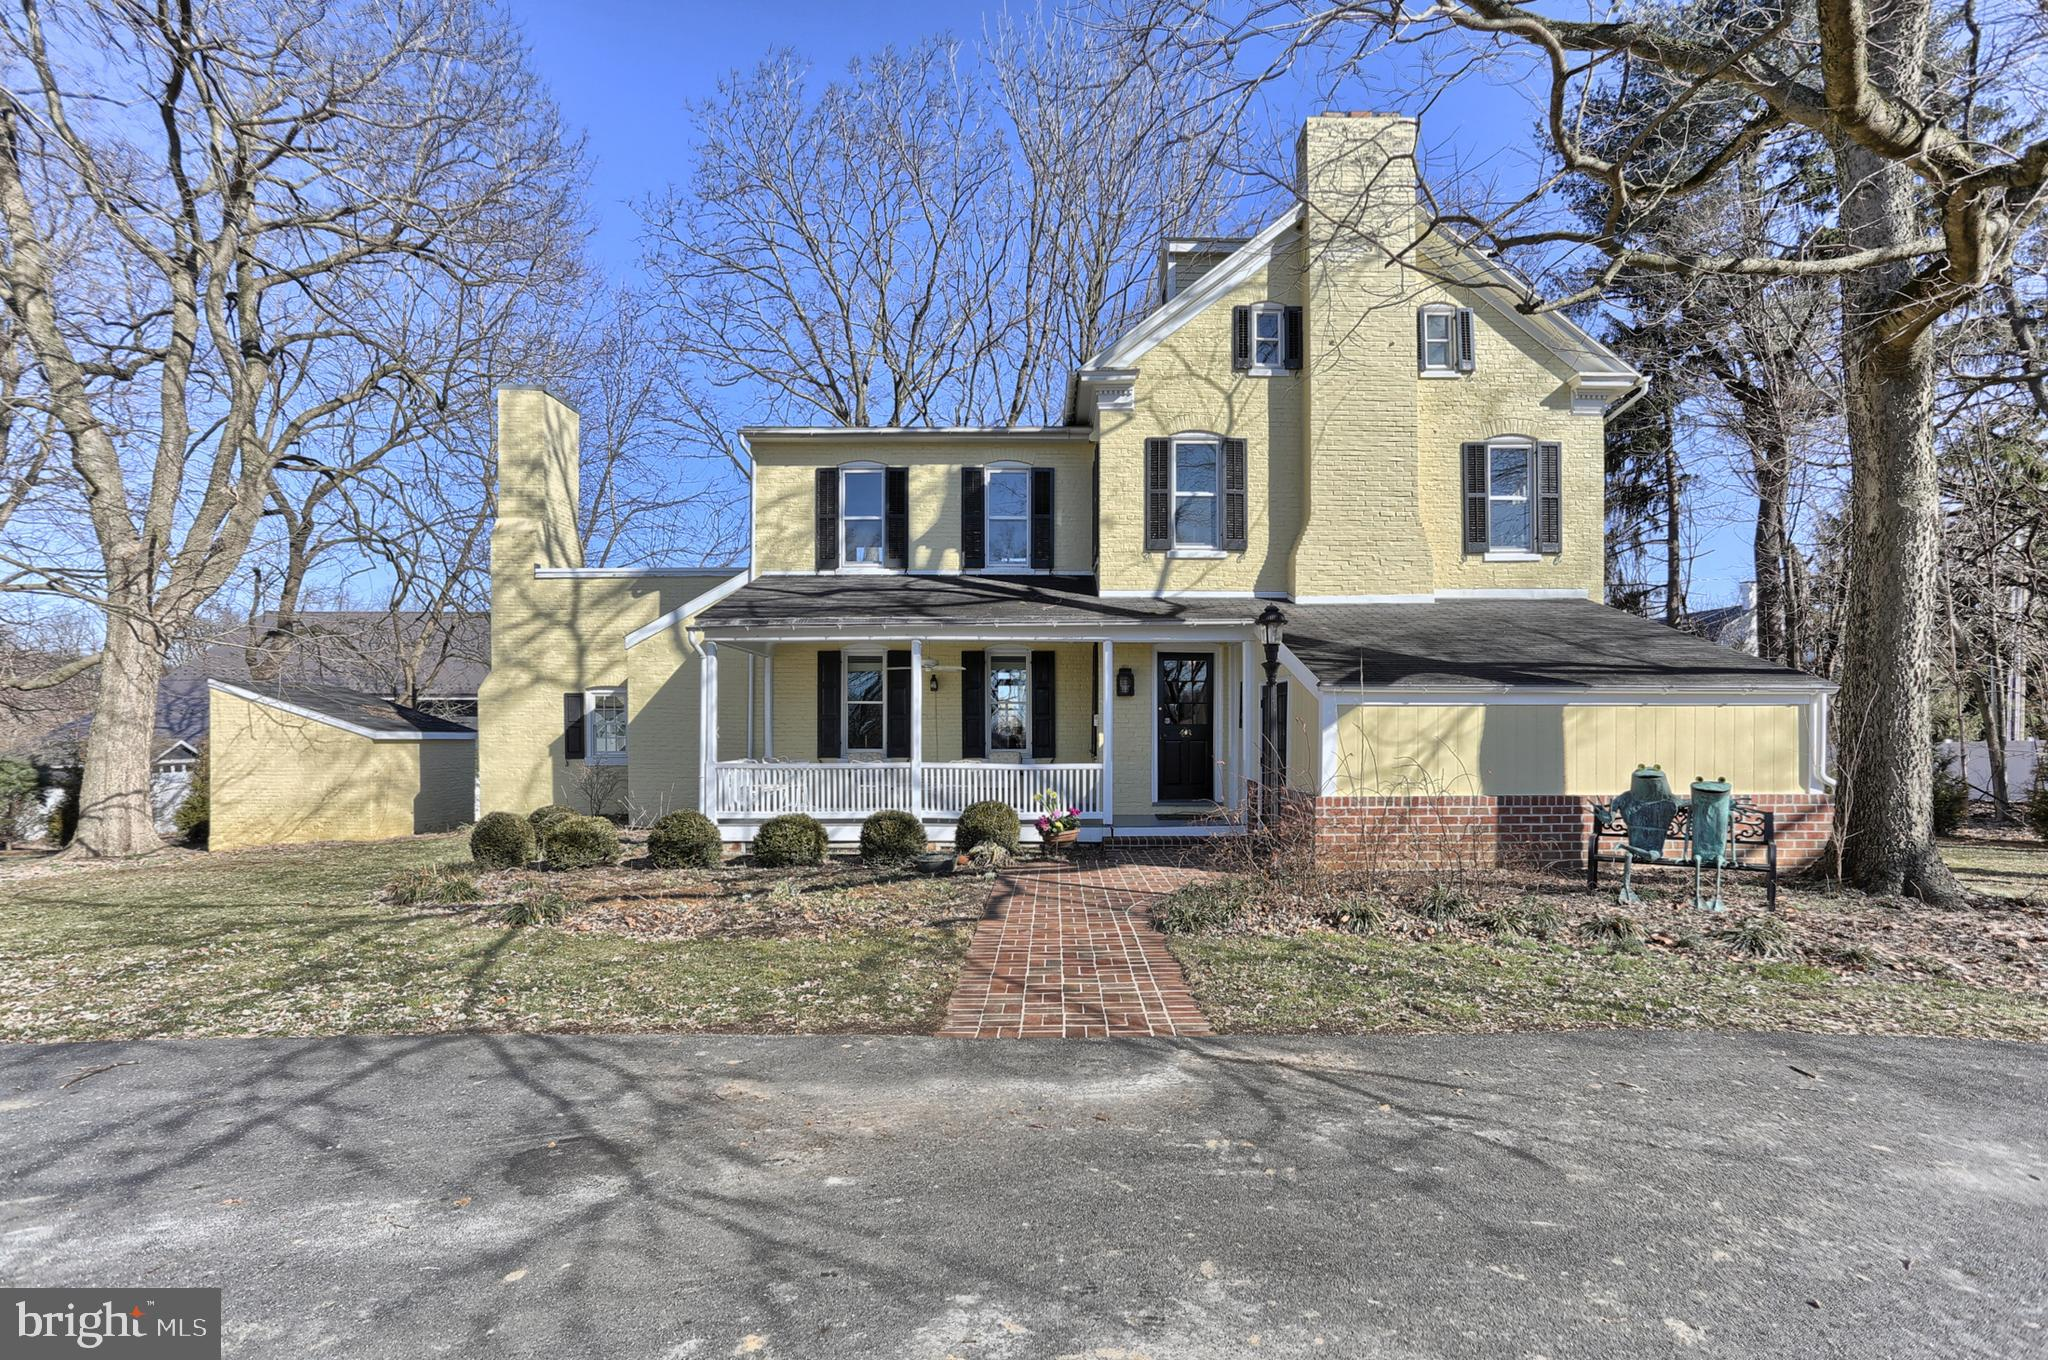 6163 LINCOLN HIGHWAY, WRIGHTSVILLE, PA 17368